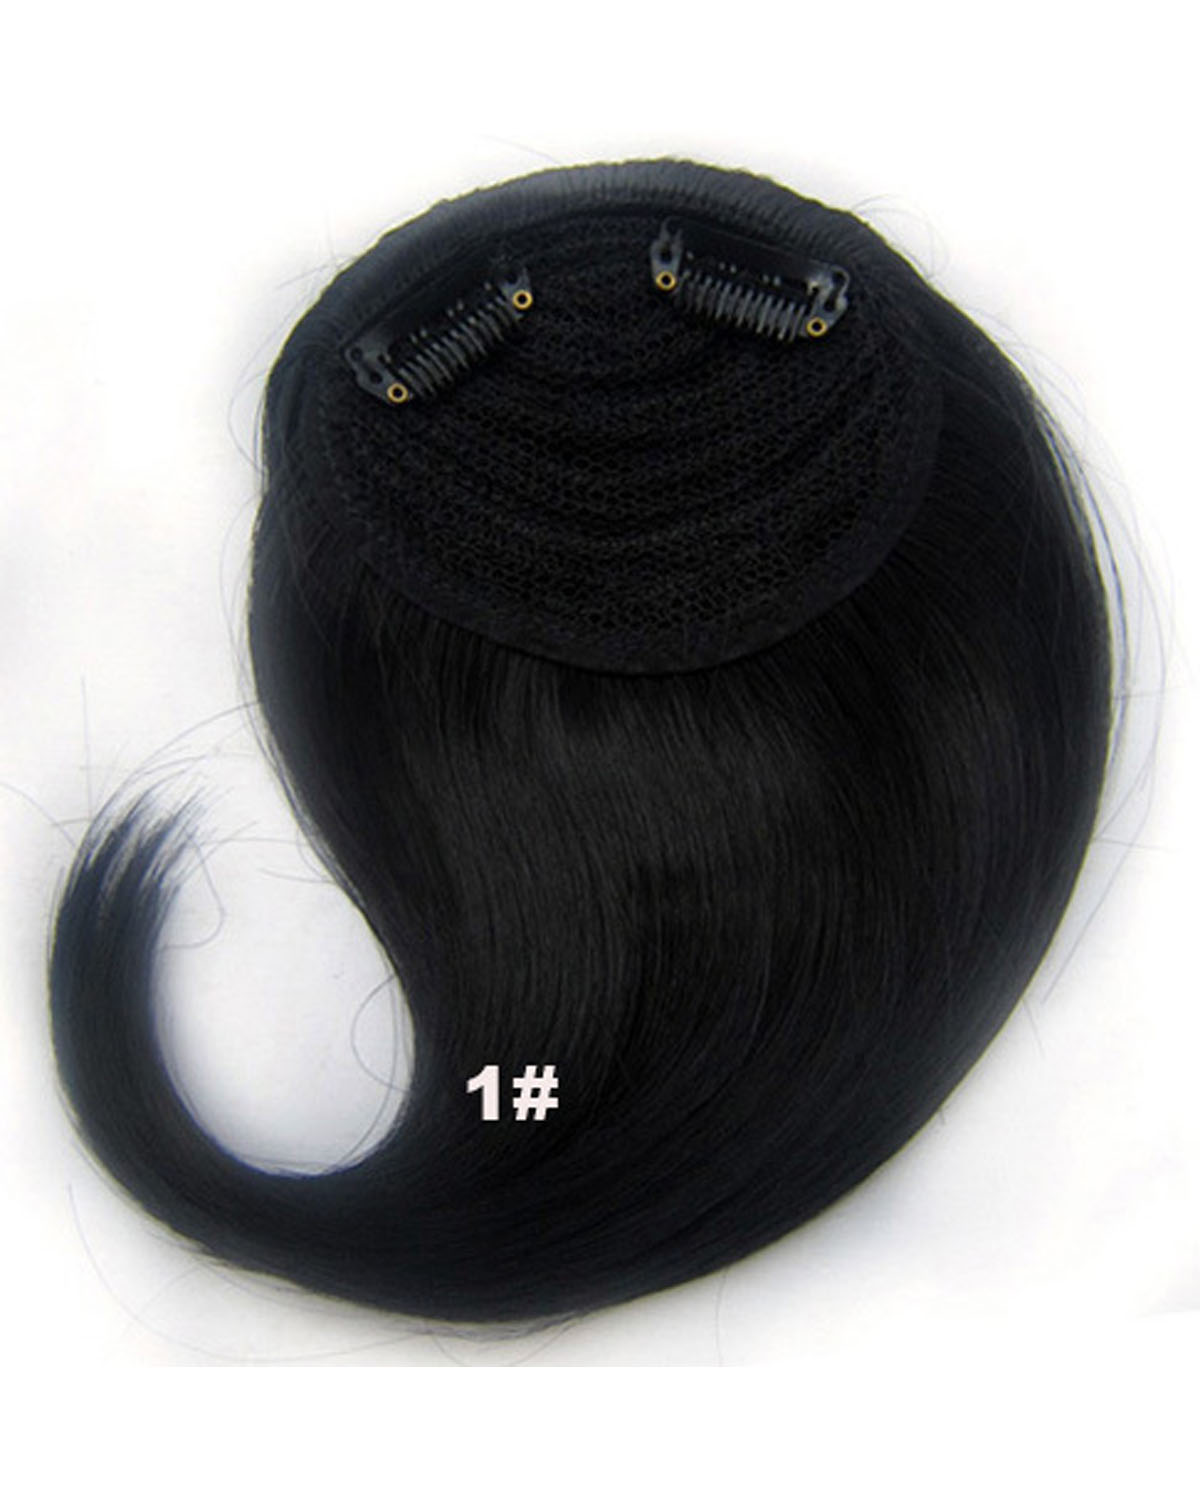 Girls Fashionable Straight Short Bangs Clip in Synthetic Hair Extension Fringe Bangs Hairpiece1#